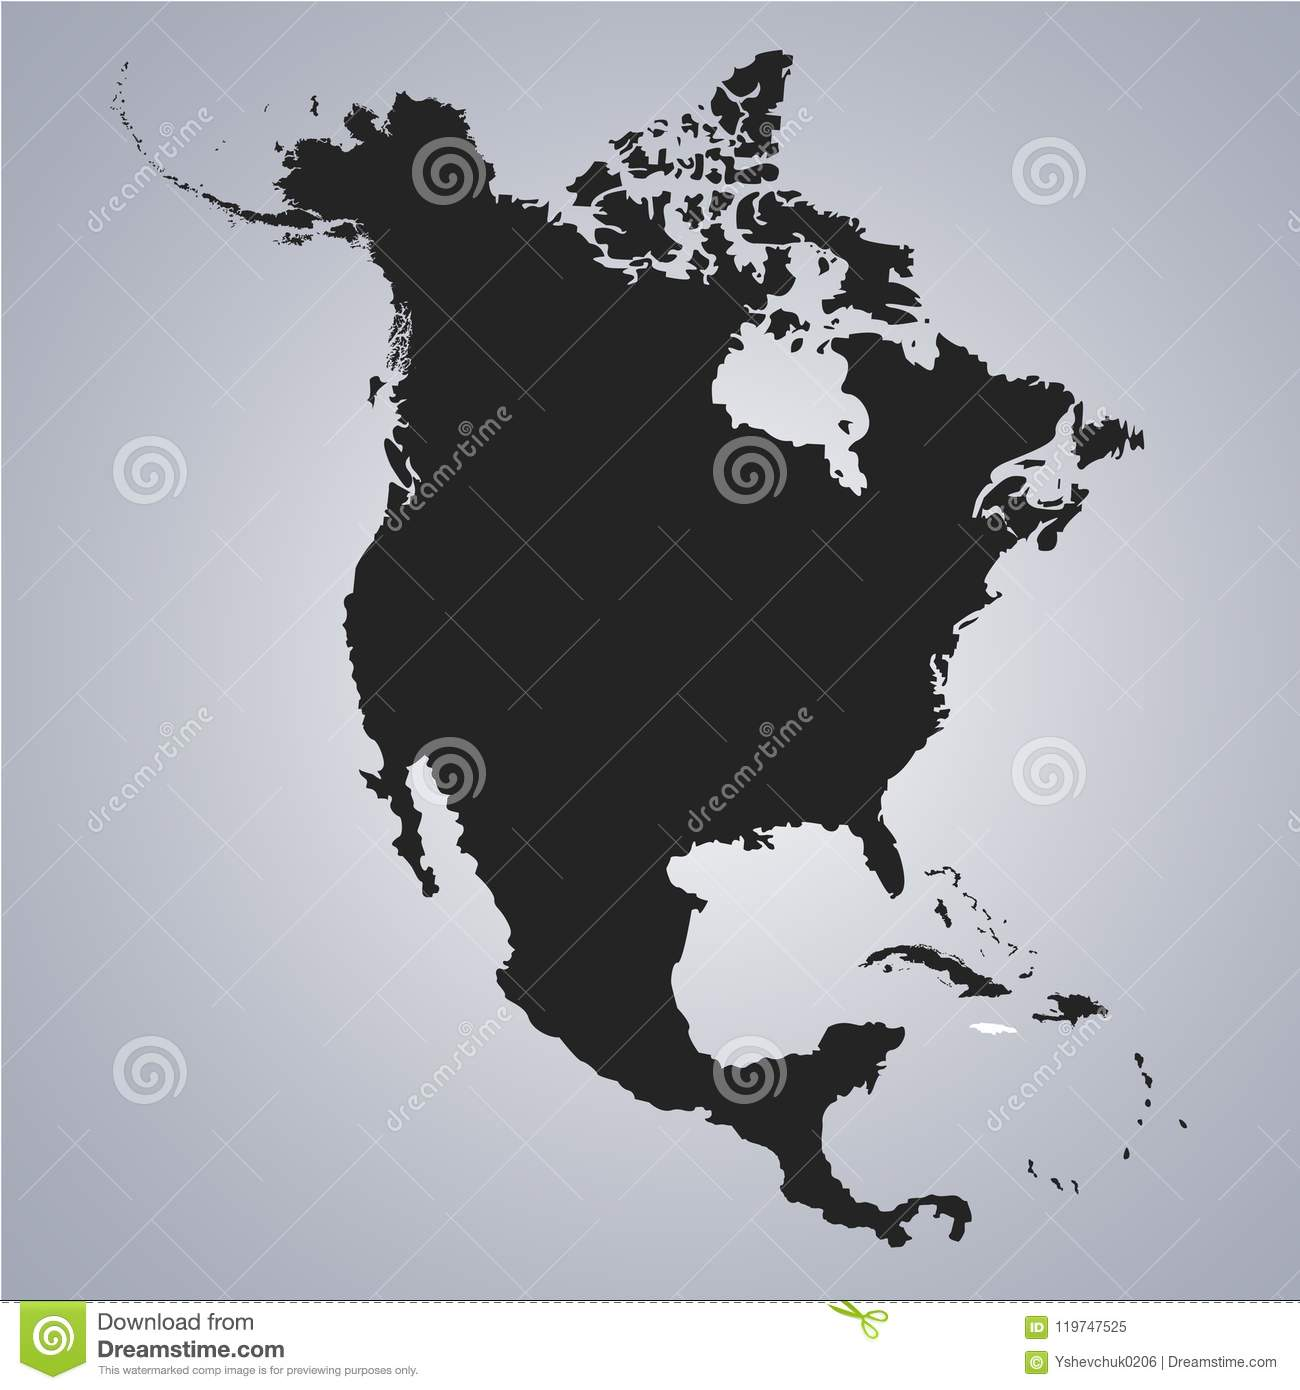 Territory Of Jamaica On North America Continent Map On The Grey ...